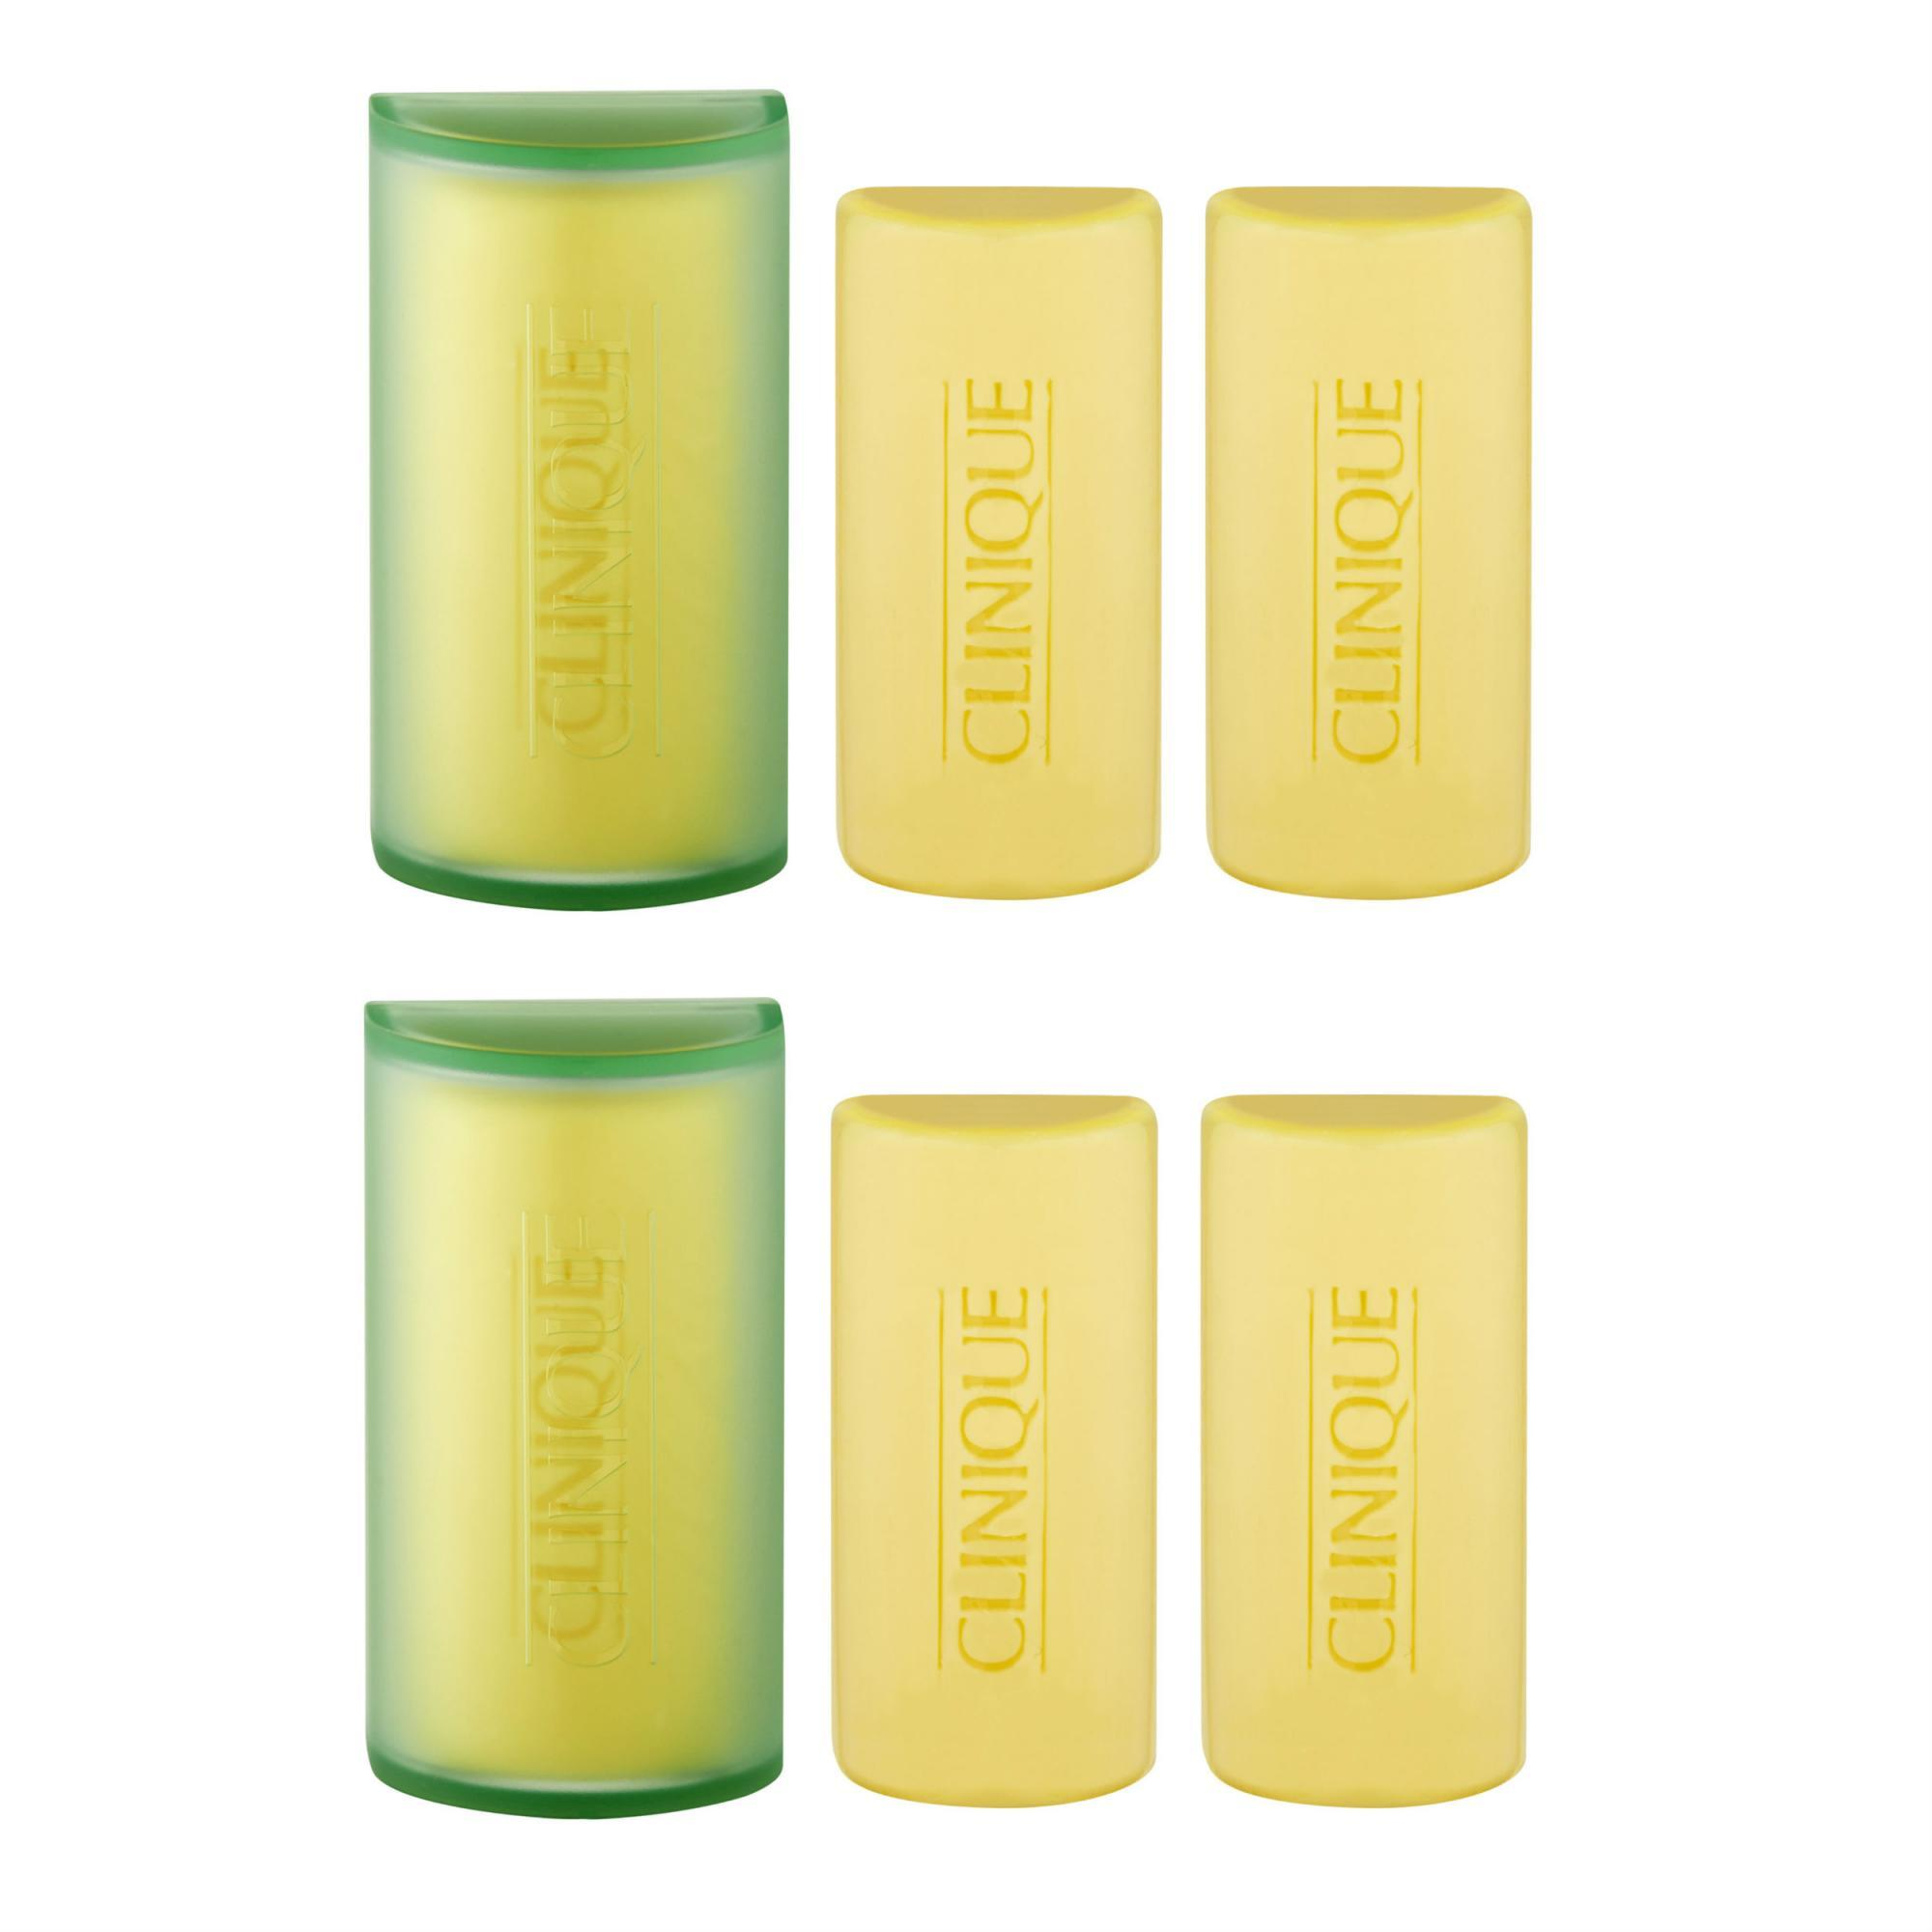 Best Deal Clinique 3 Little Soaps With Travel Dish Mild 1 Set 3Pcs 50G Each X 2 Intl